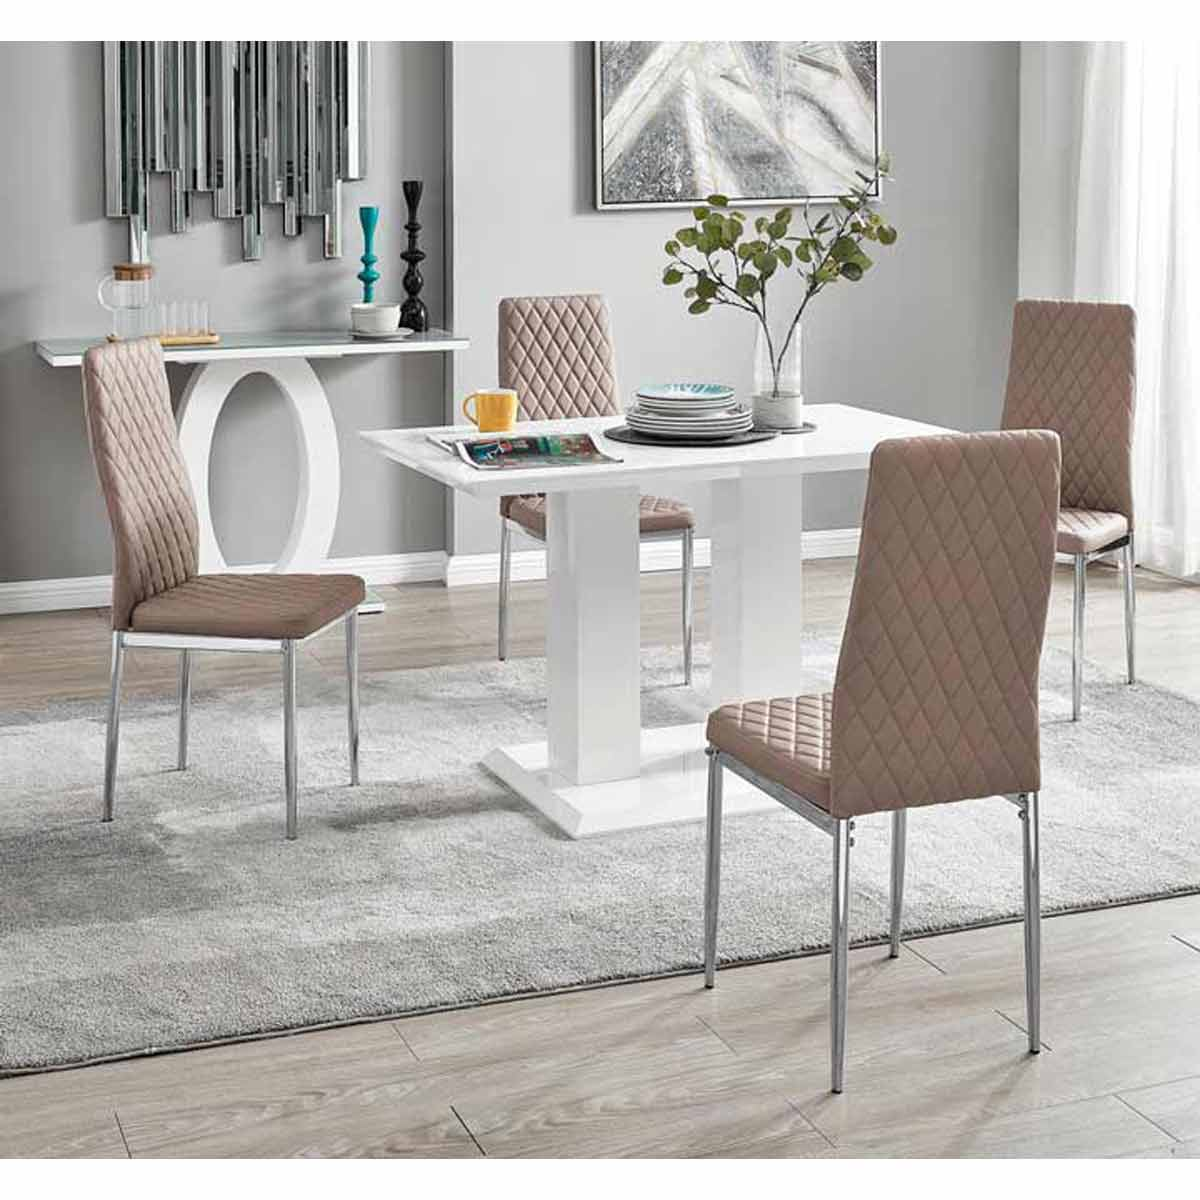 Furniture Box Imperia 4 Modern White High Gloss Dining Table And 4 Cappuccino Milan Chairs Set